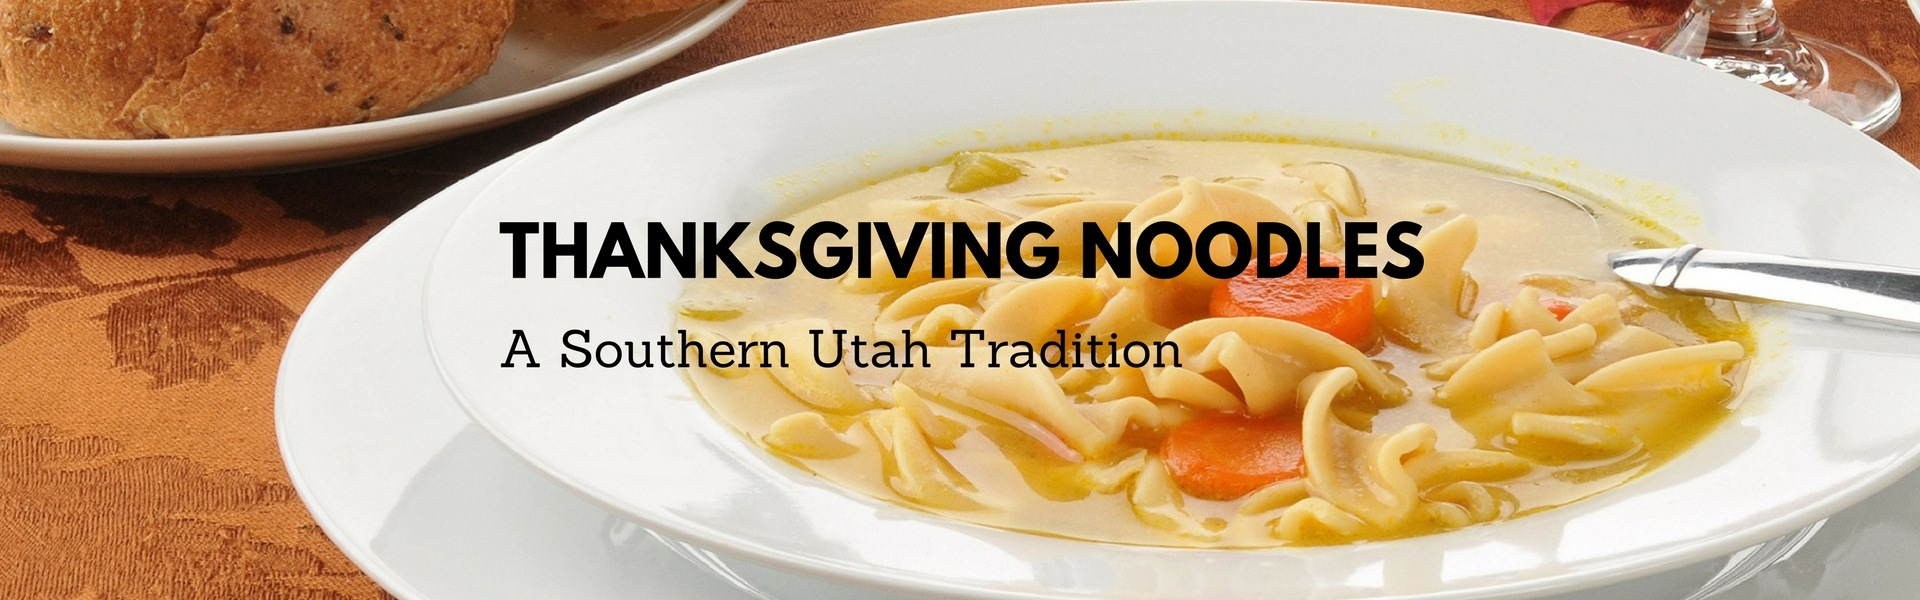 Thanksgiving Noodles